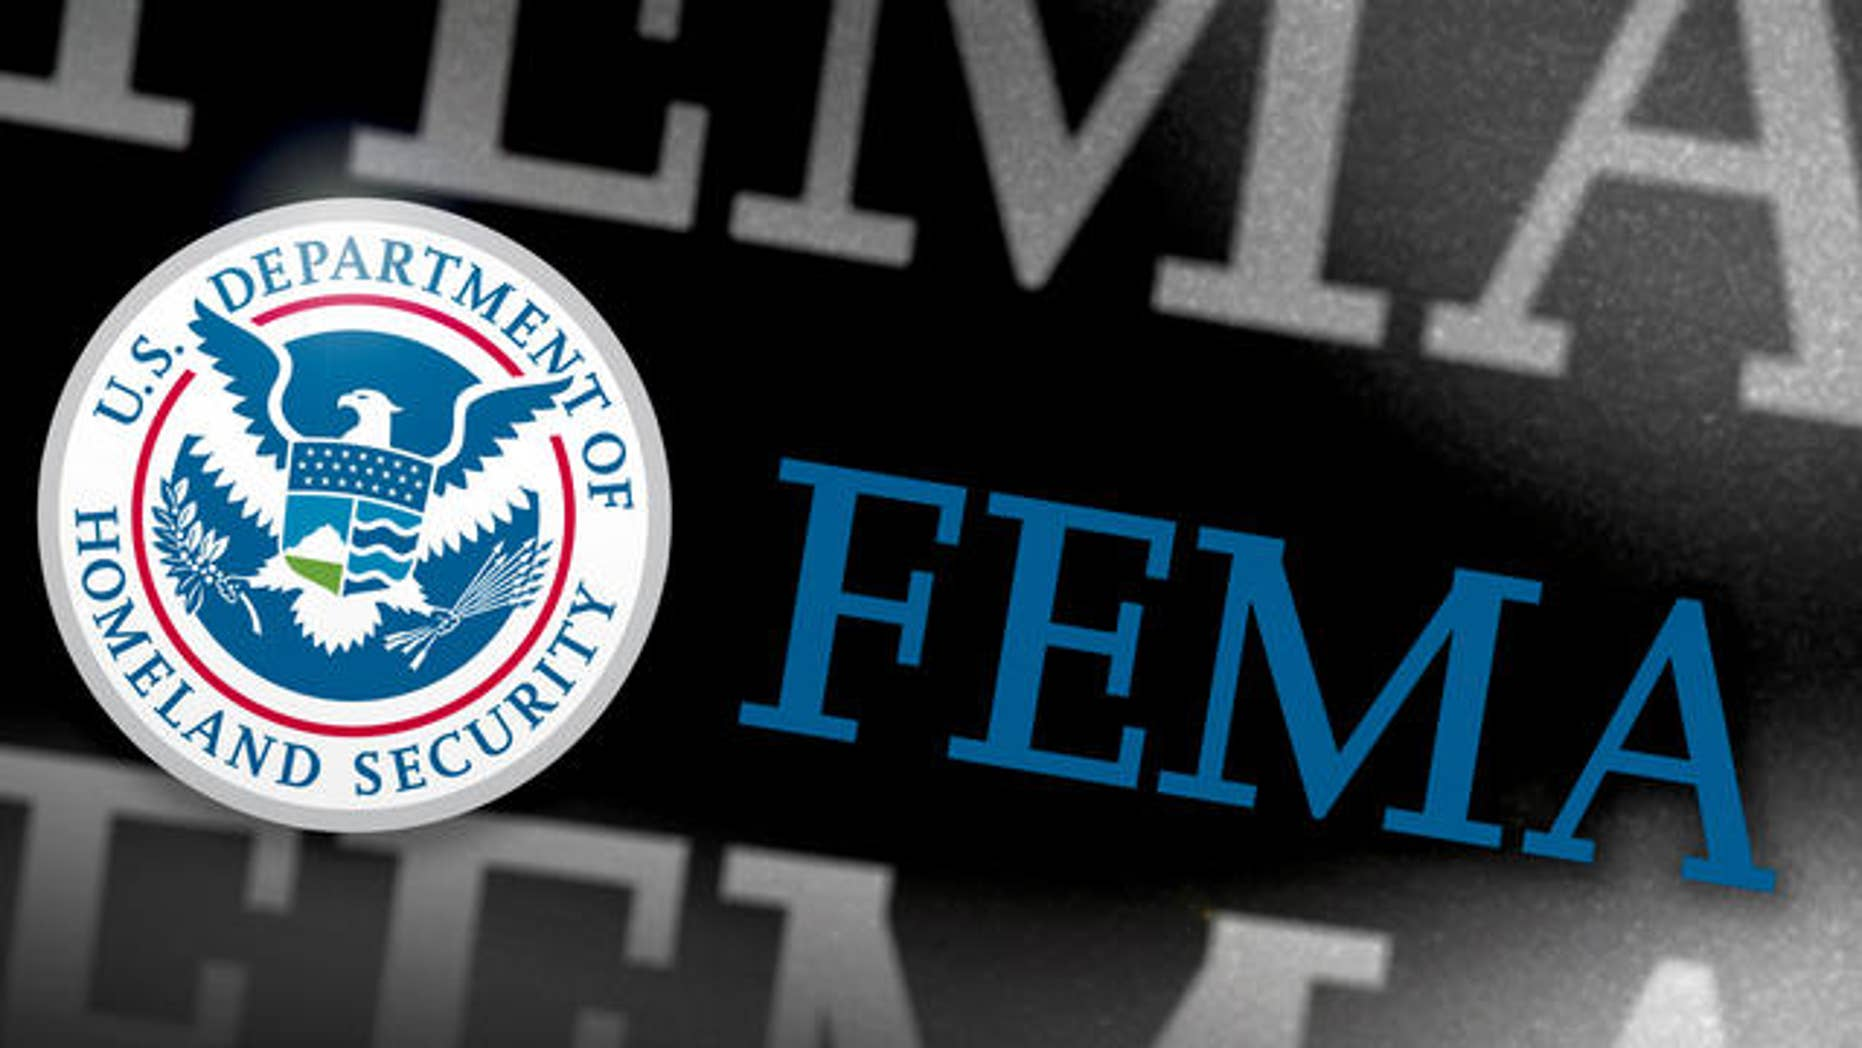 House Republican leaders are calling on the Obama administration to ensure that the Federal Emergency Management Agency doesn't run out of money as it responds to Hurricane Irene.